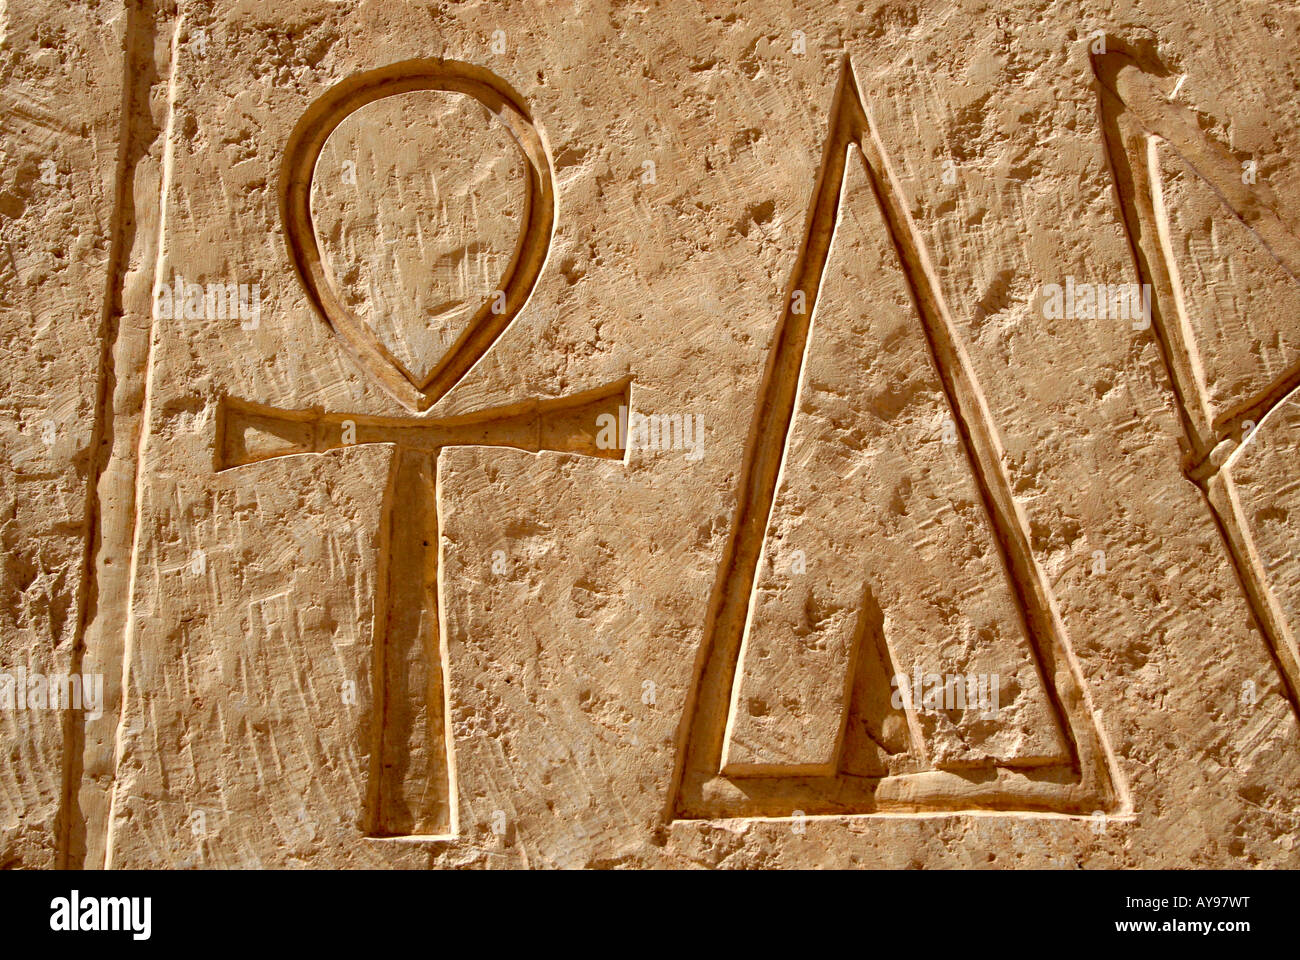 Carvings of hieroglyphs at Karnak Temple, Luxor, Egypt - Stock Image